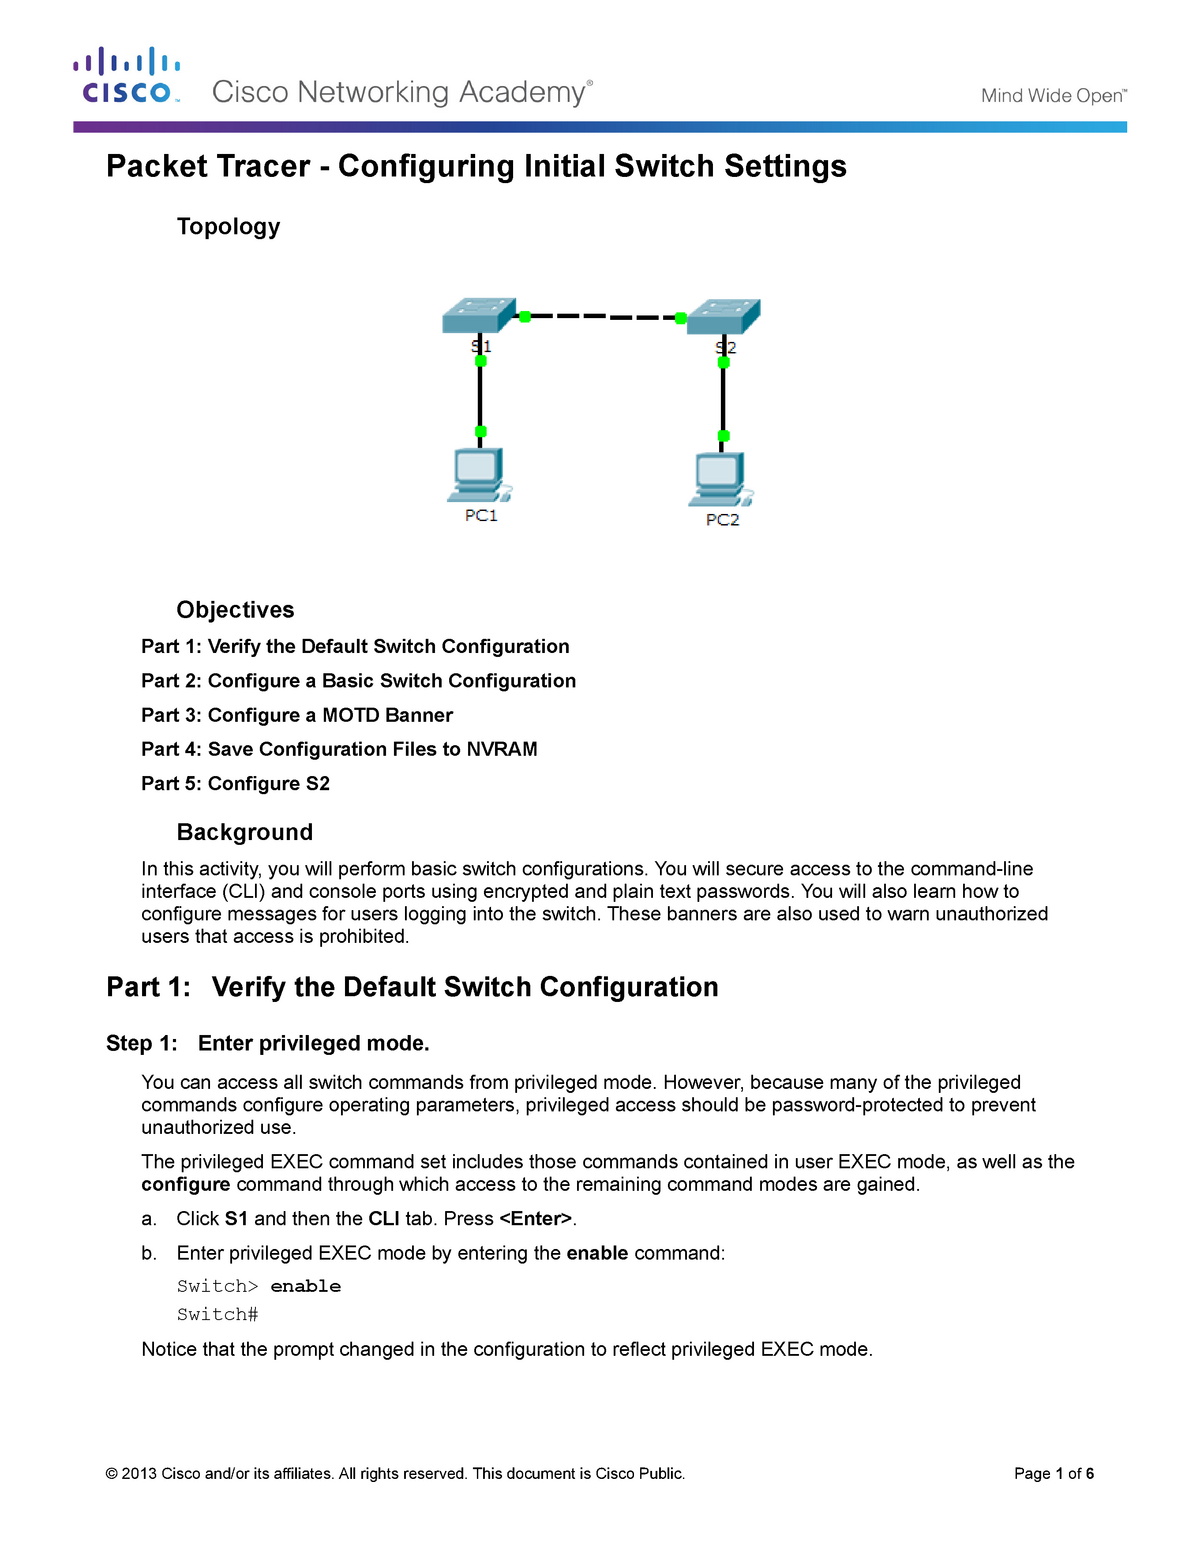 2 2 3 3 Packet Tracer - Configuring Initial Switch Settings